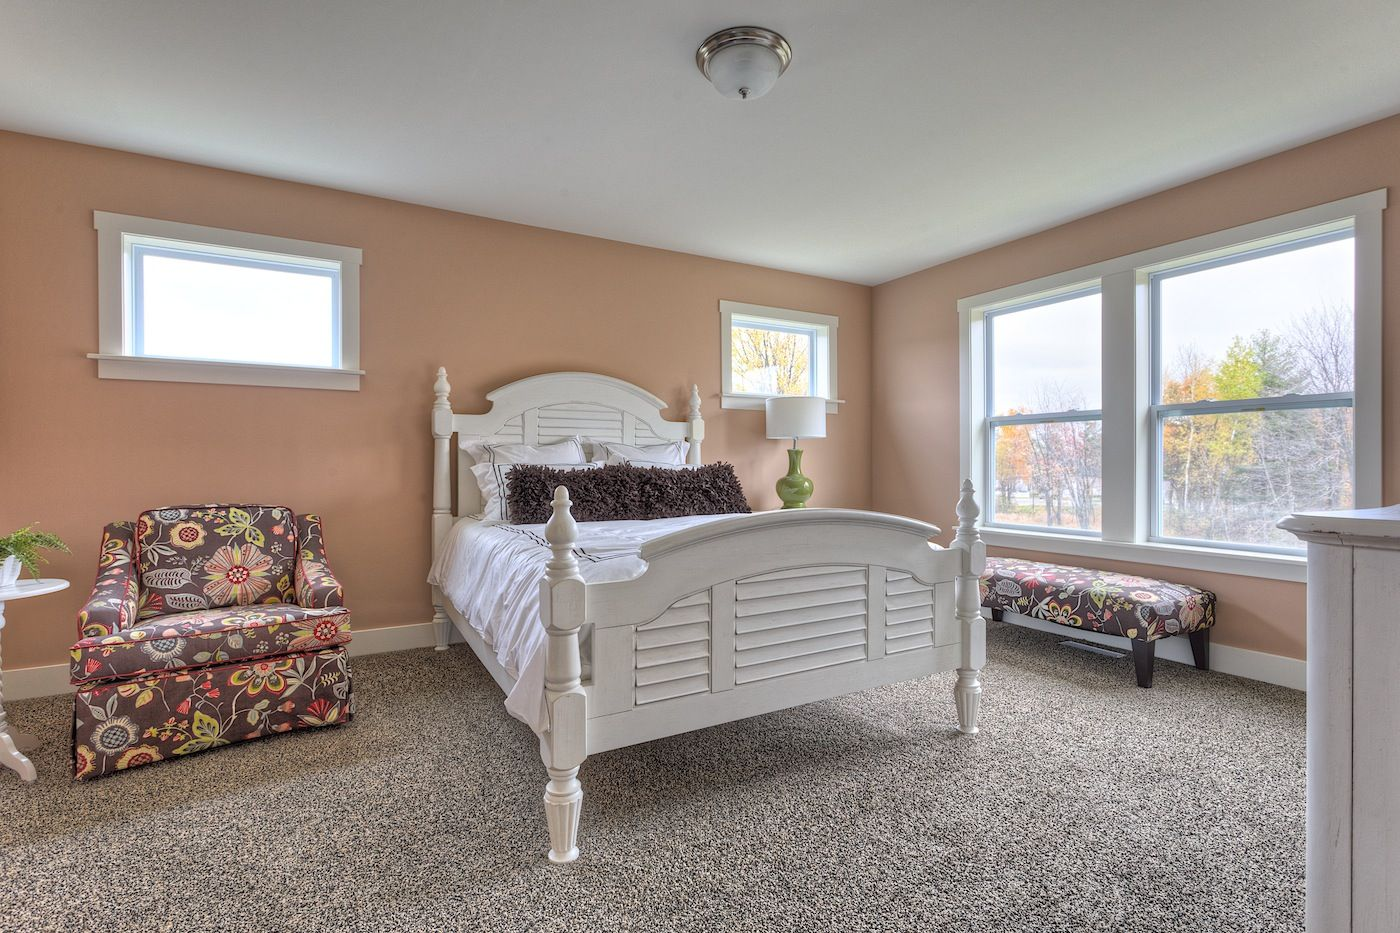 Bedroom featured in the Traditions 2200 V8.0b By Allen Edwin Homes in South Bend, IN